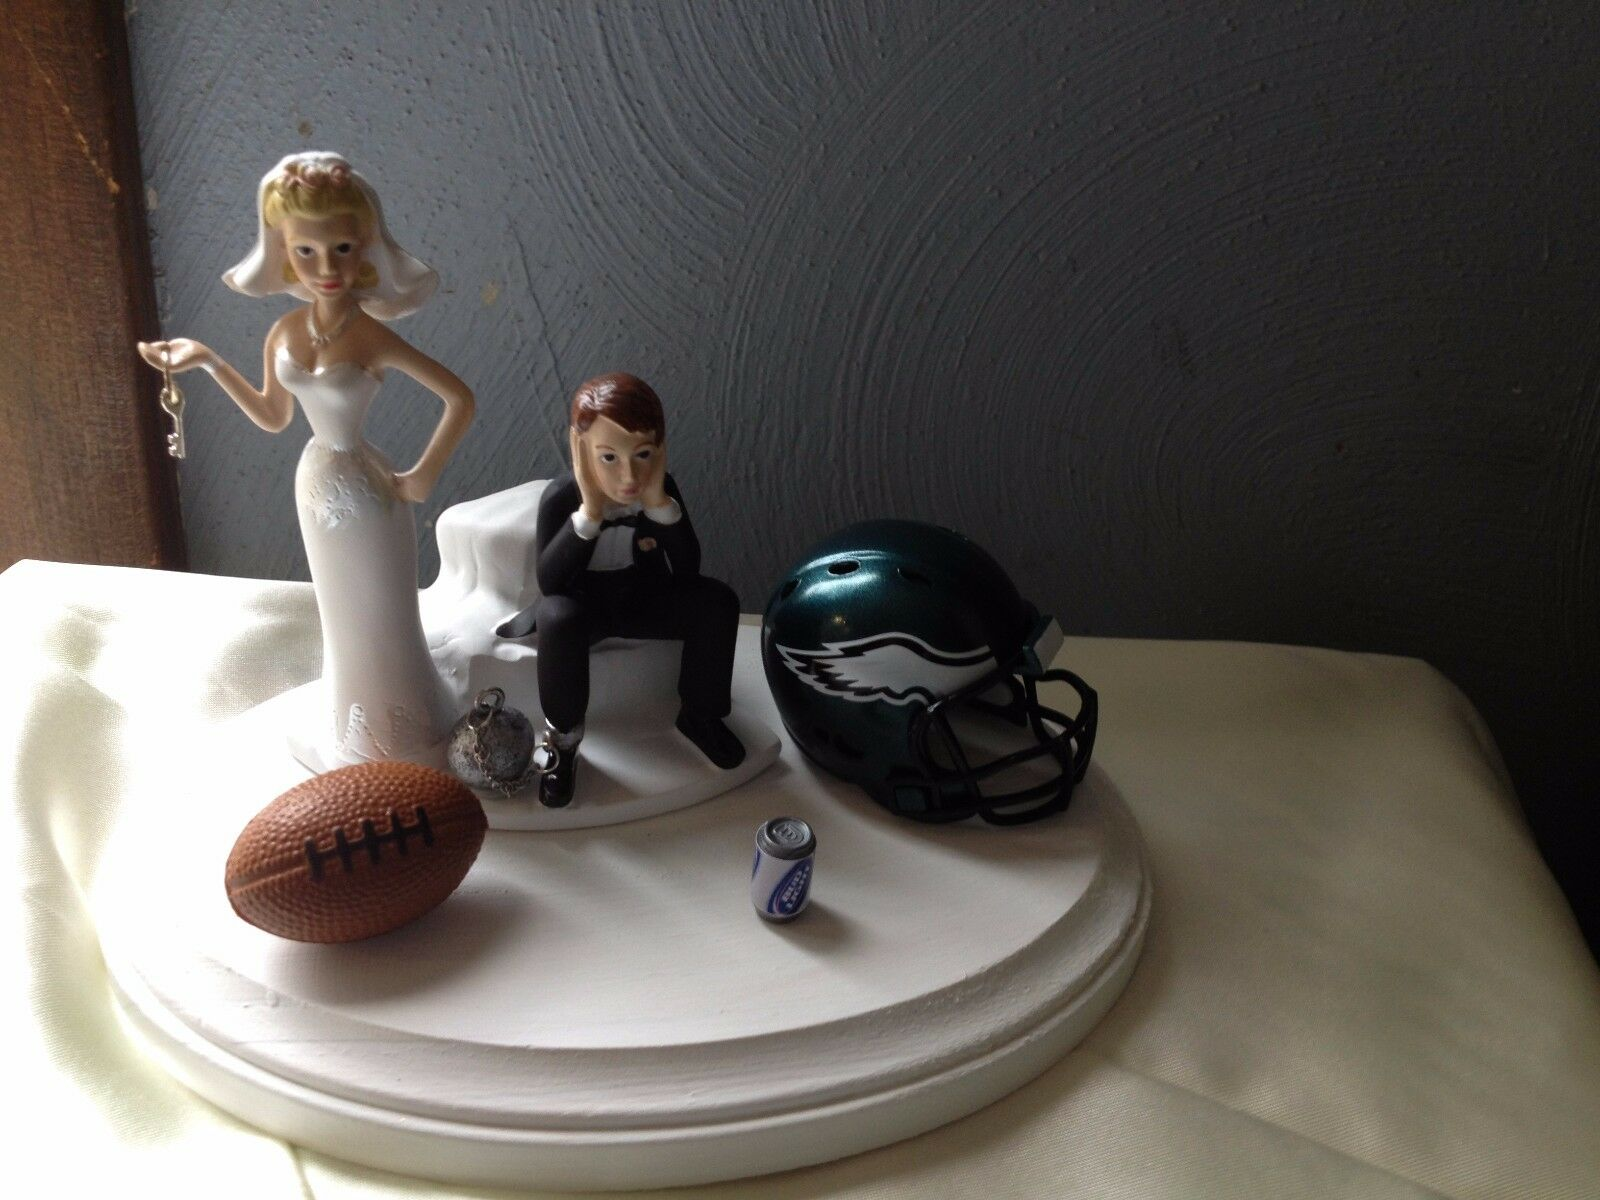 Philadelphia Eagles Cake Topper Bride Groom Wedding Day Funny Football Theme